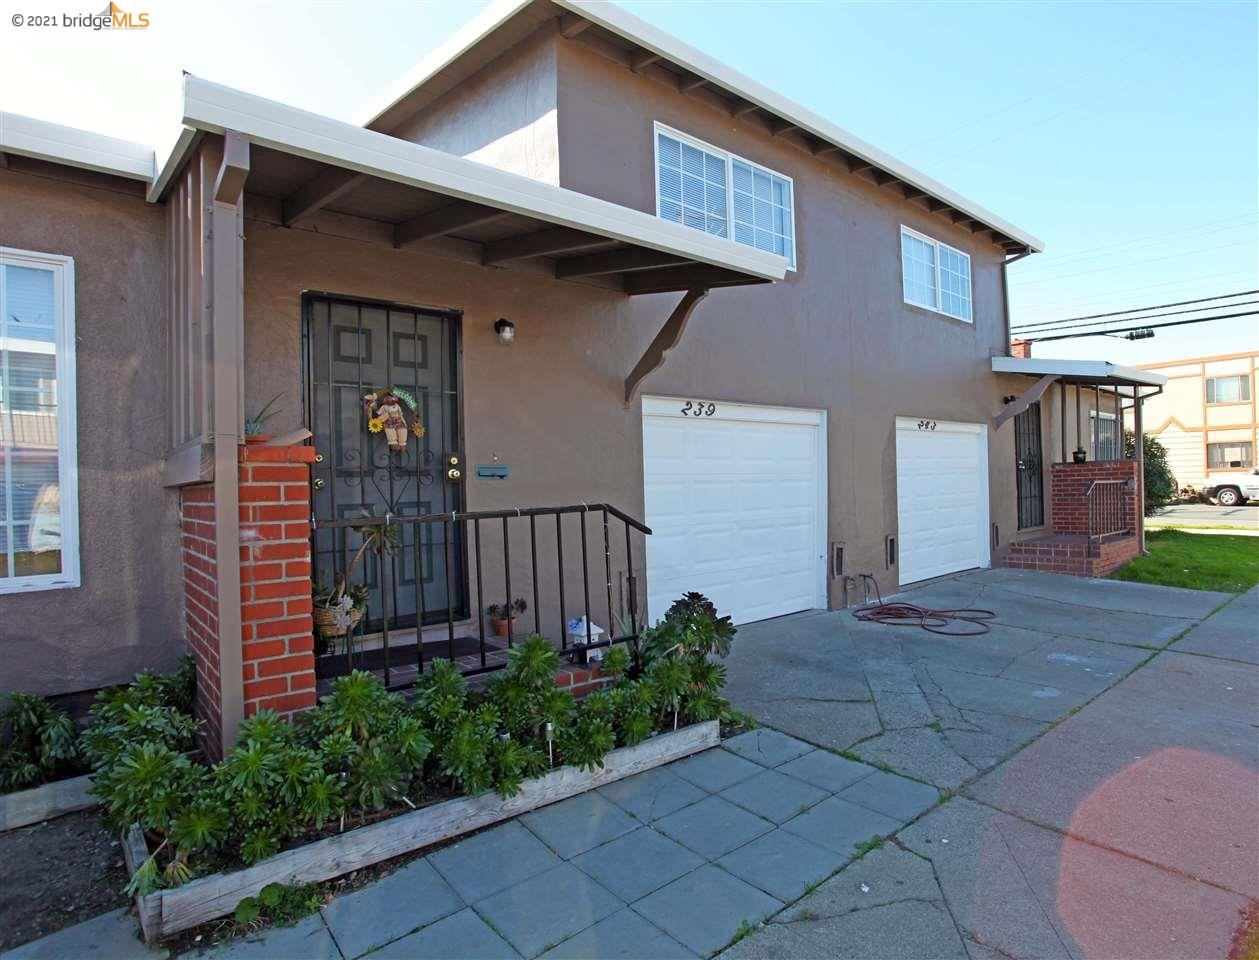 Photo of 243 Lawton St, ANTIOCH, CA 94509 (MLS # 40943668)